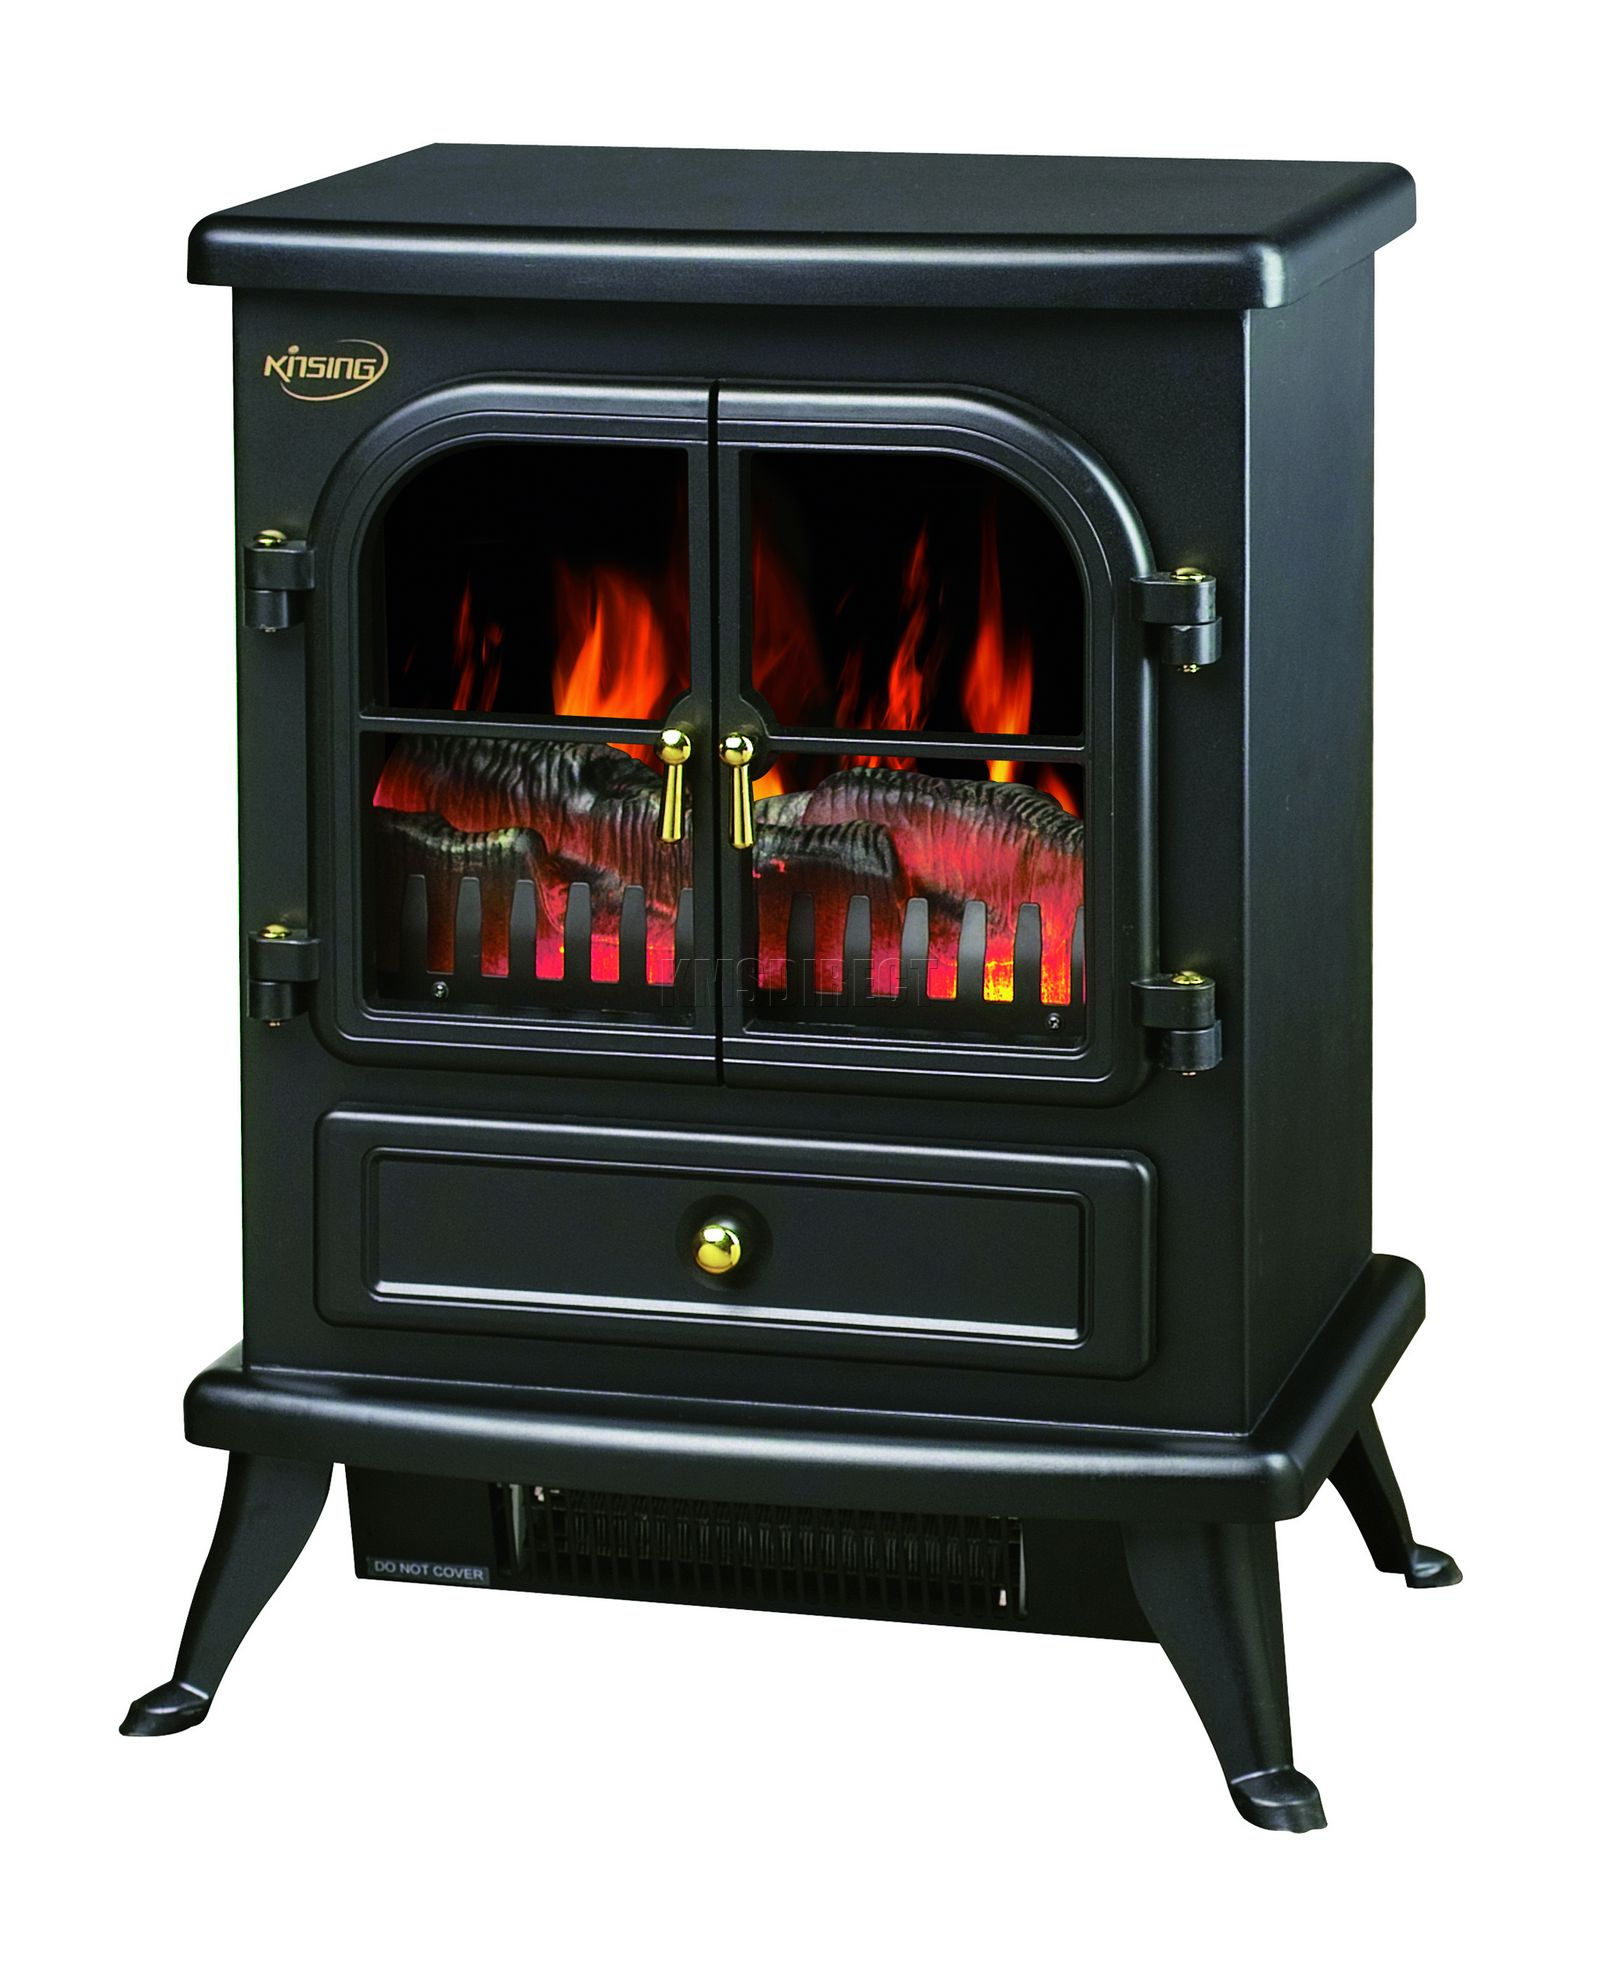 new 1850w log burning flame effect stove electric fire